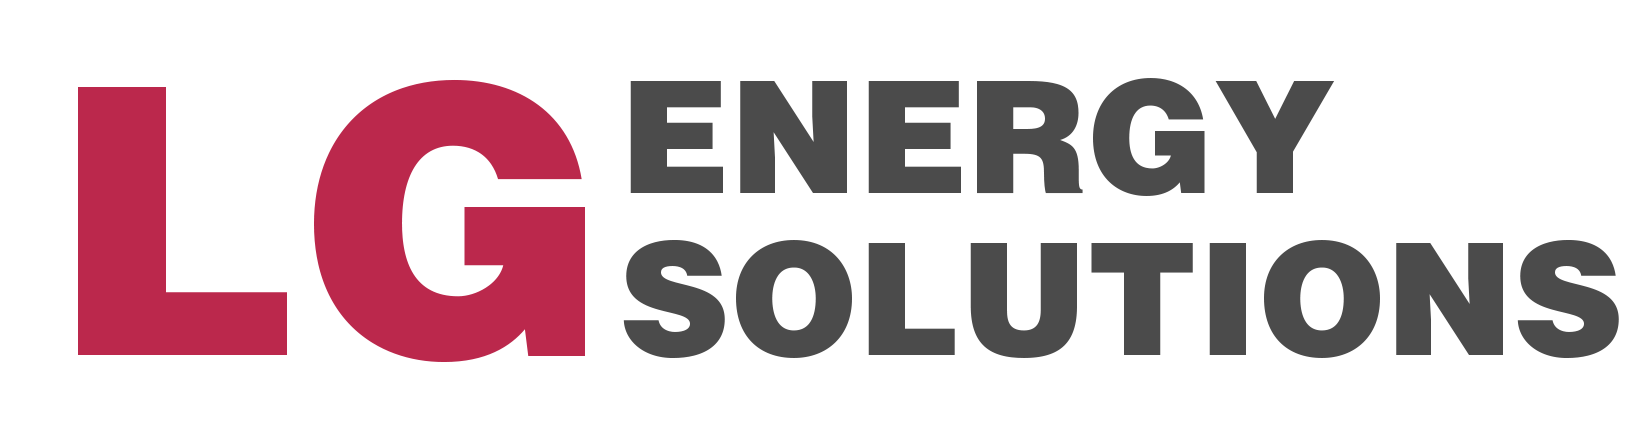 LG Energy Solutions